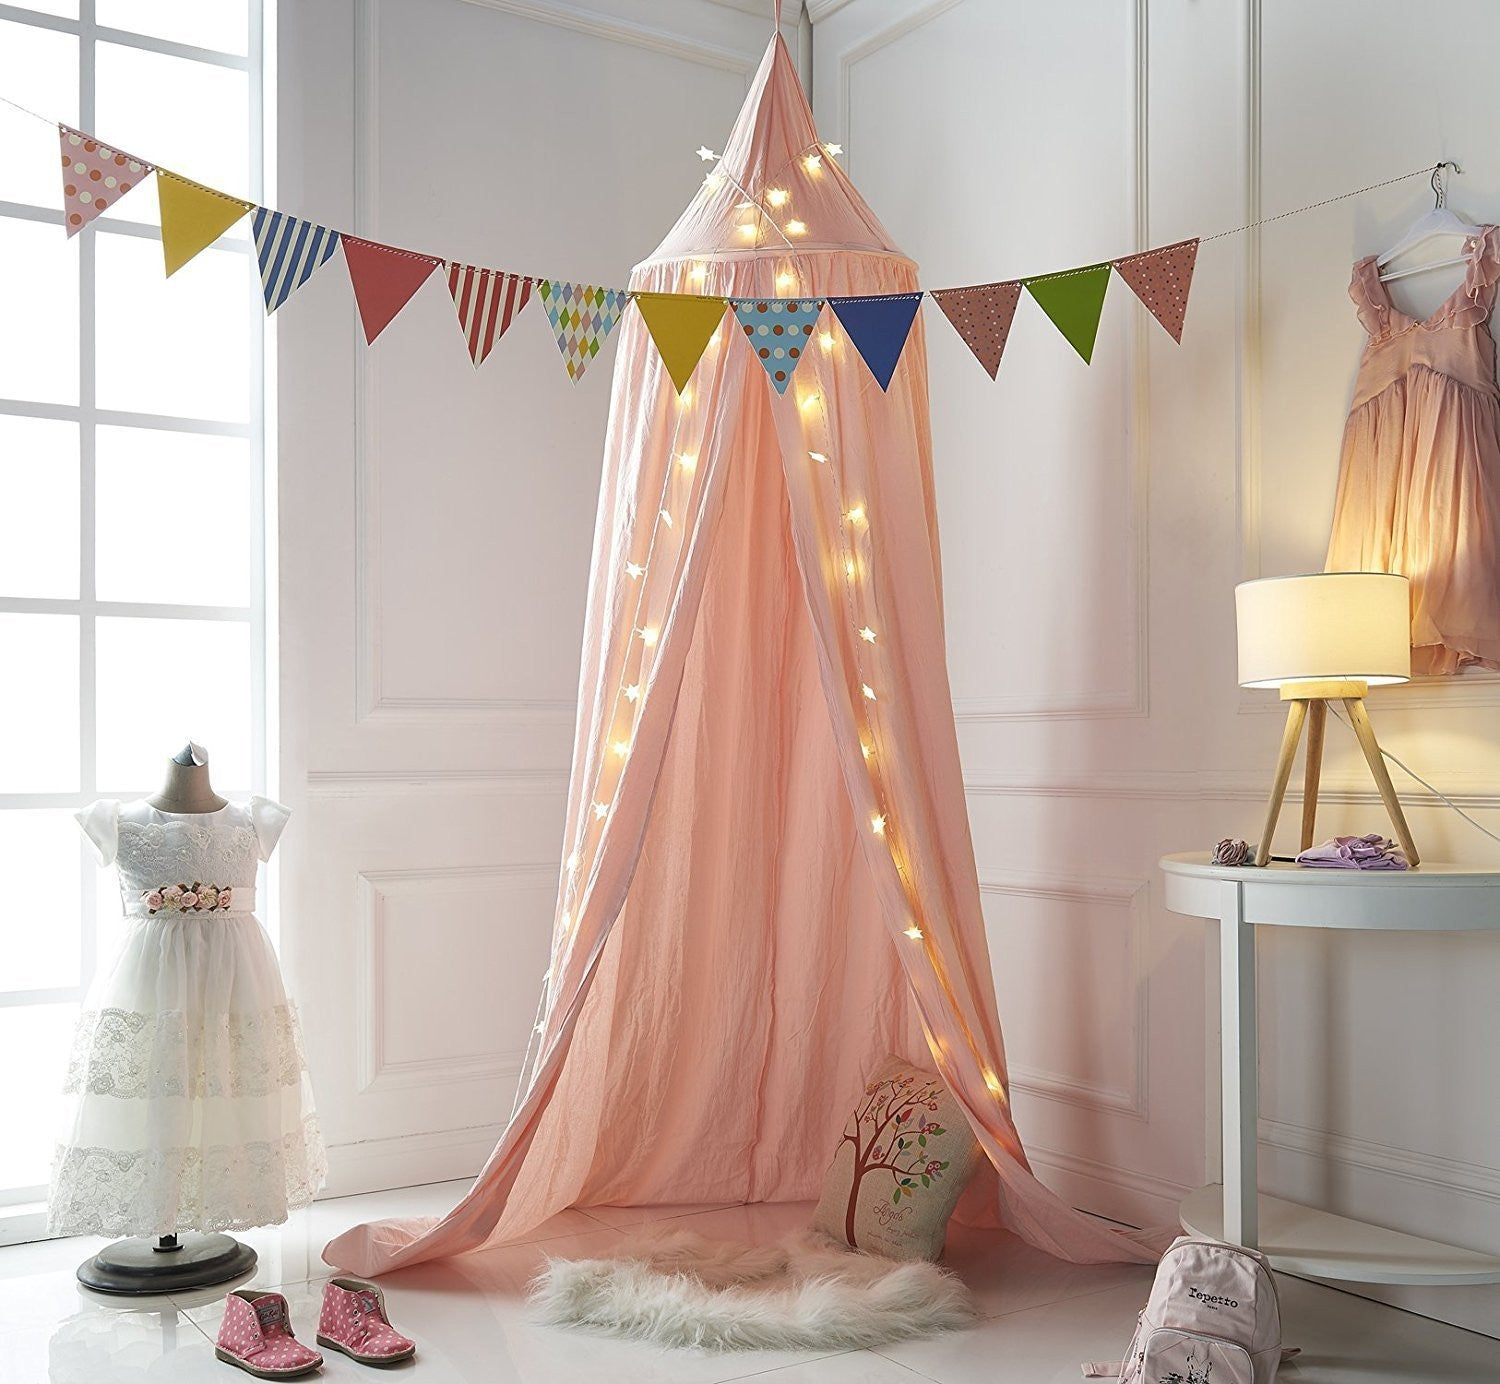 ... Dome Princess Bed Canopy Bed Curtain Mosquito Net For Children Room  Decoration,(Grey) ...